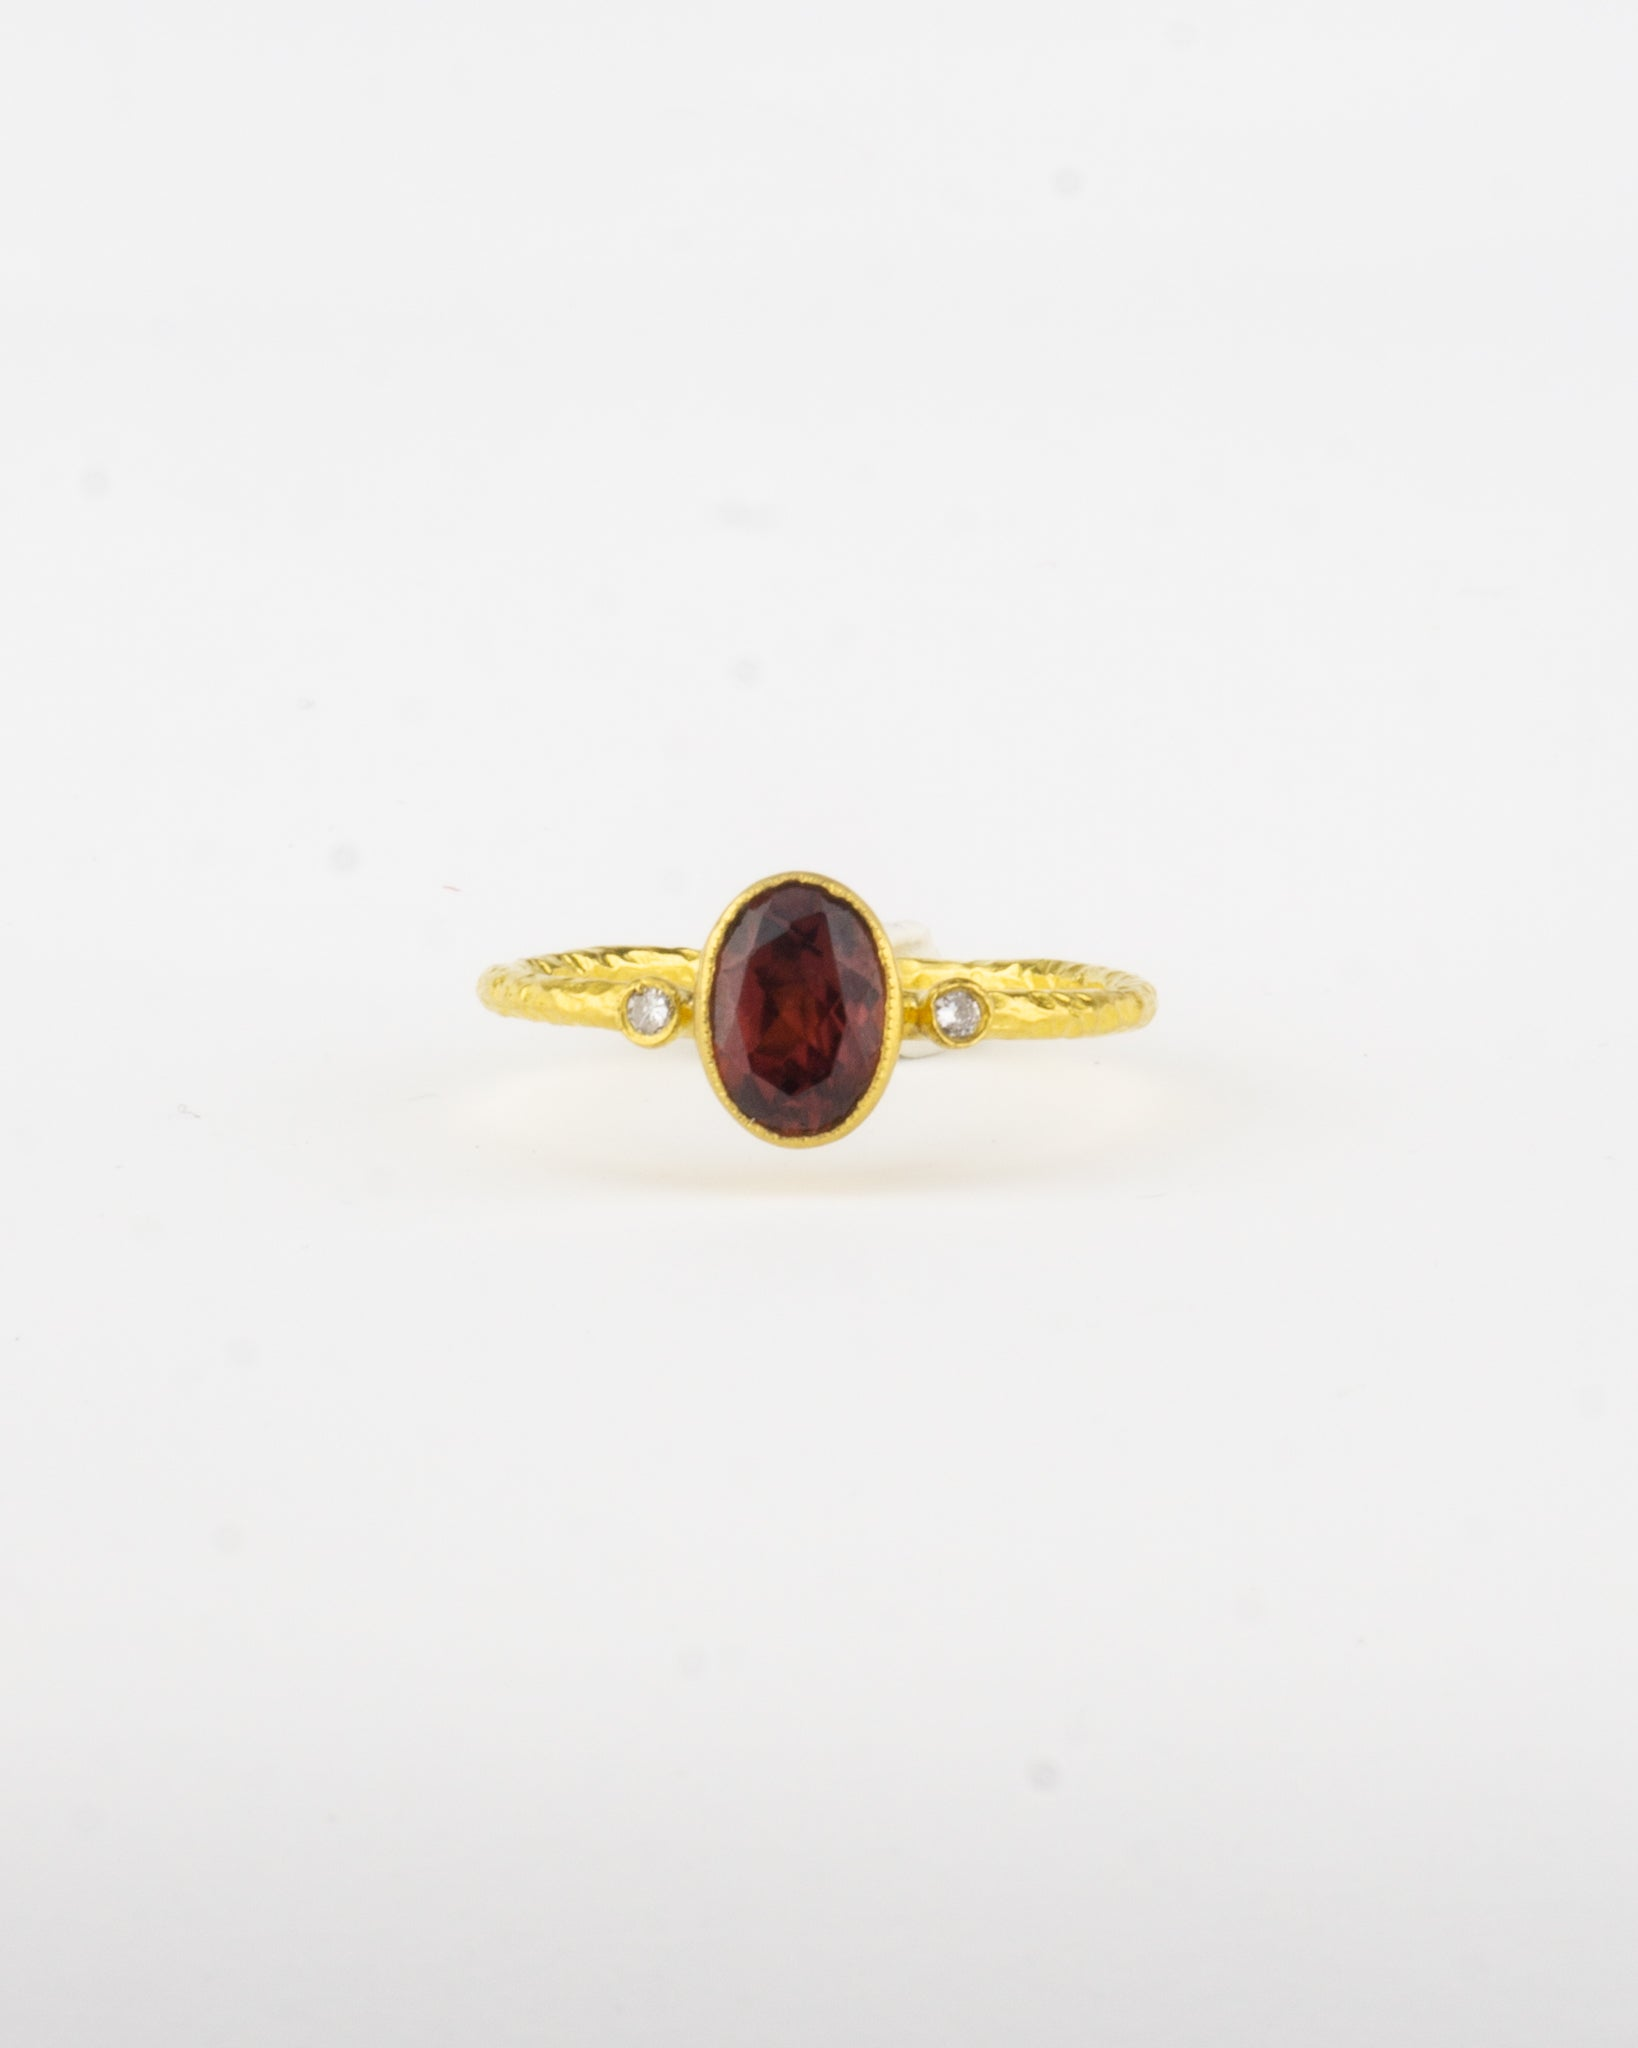 24 K Gold Red Garnet Ring with Diamonds